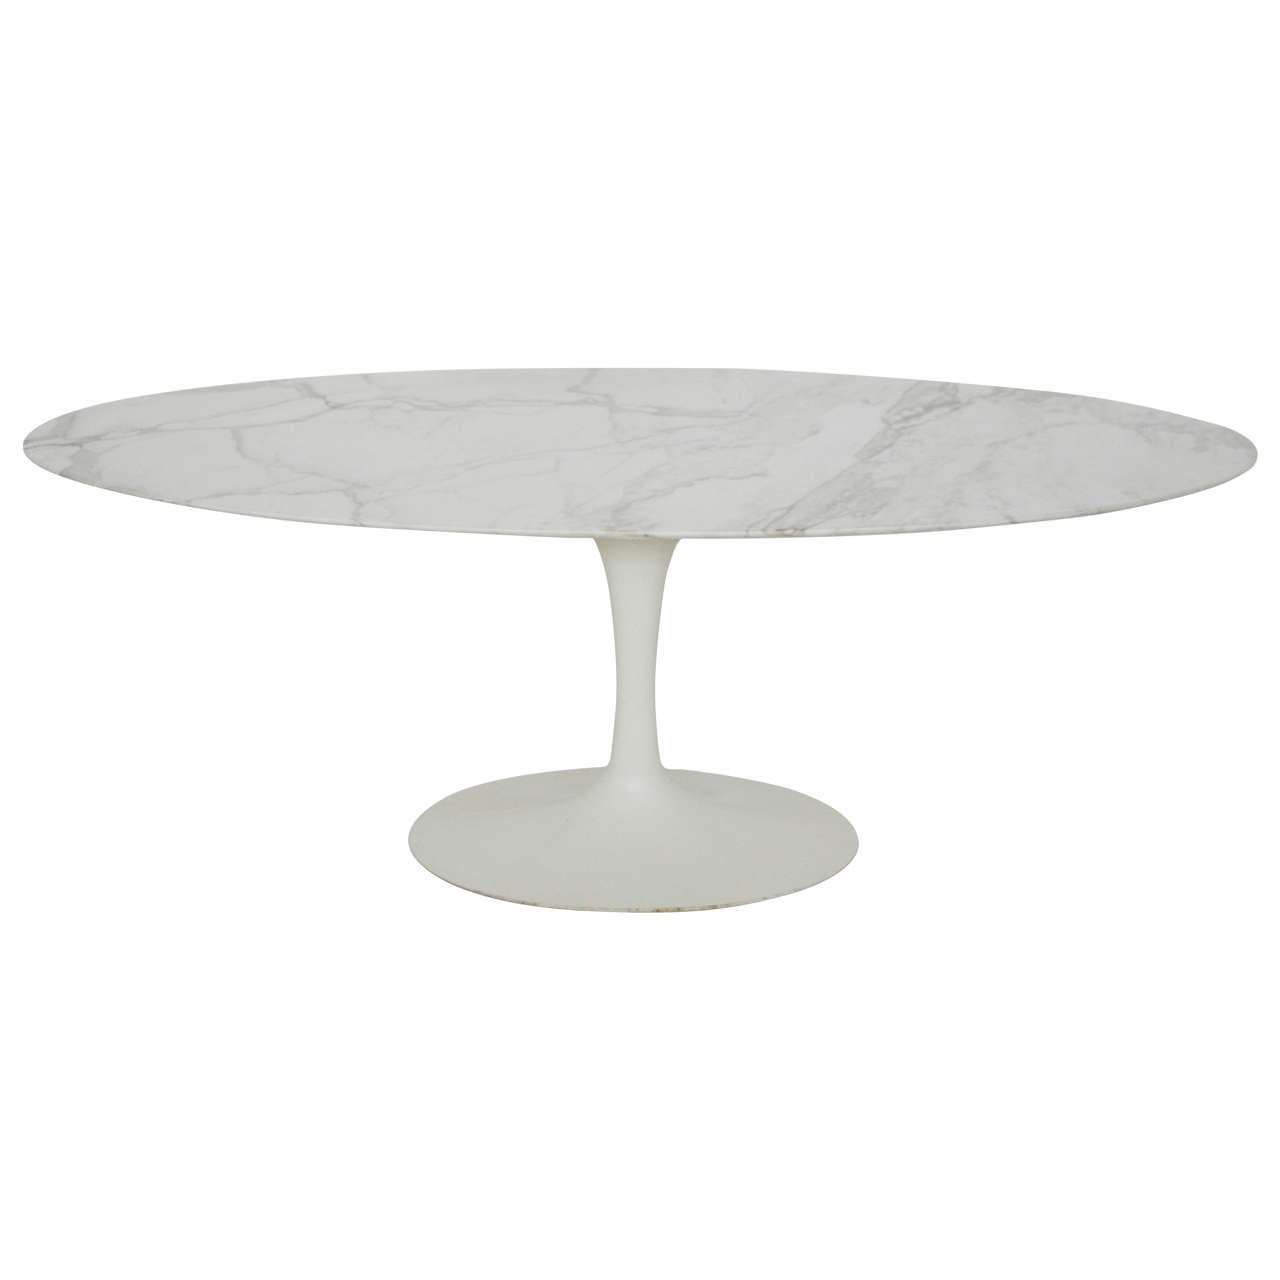 Eero Saarinen Oval Marble Dining Table At 1stdibs